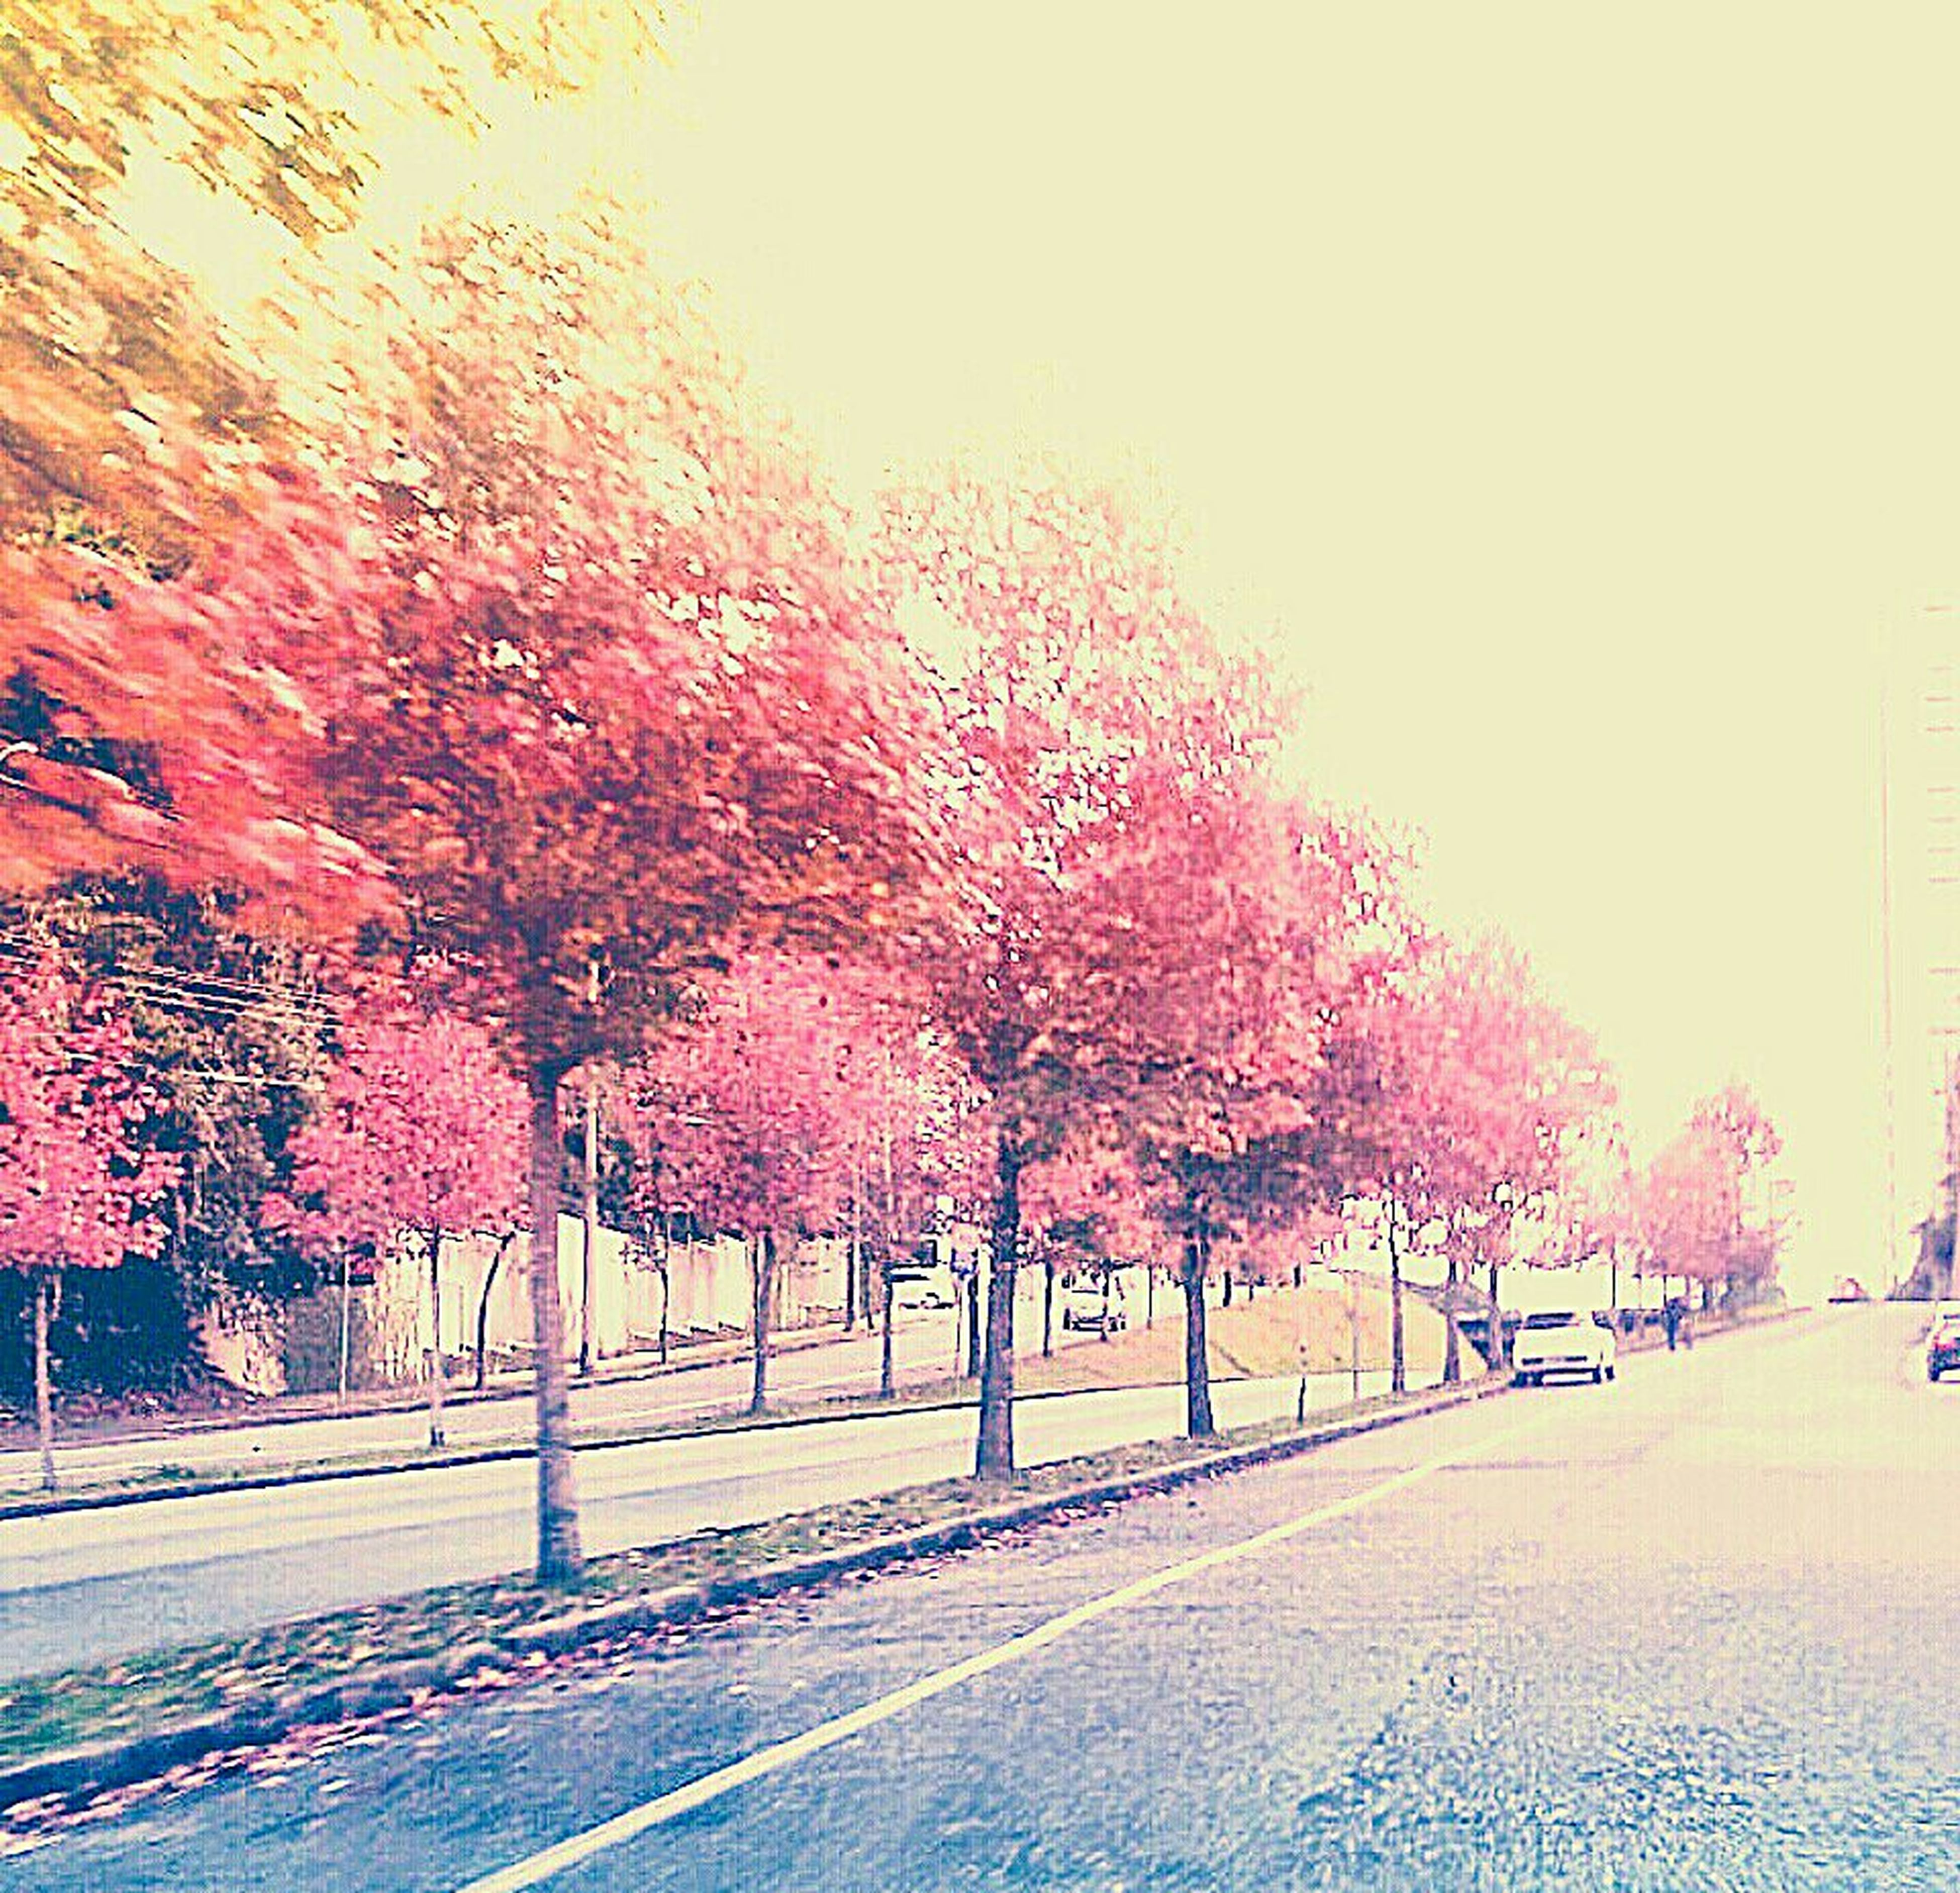 tree, road, autumn, clear sky, street, transportation, season, growth, branch, nature, change, day, red, footpath, sidewalk, the way forward, outdoors, sky, no people, wall - building feature